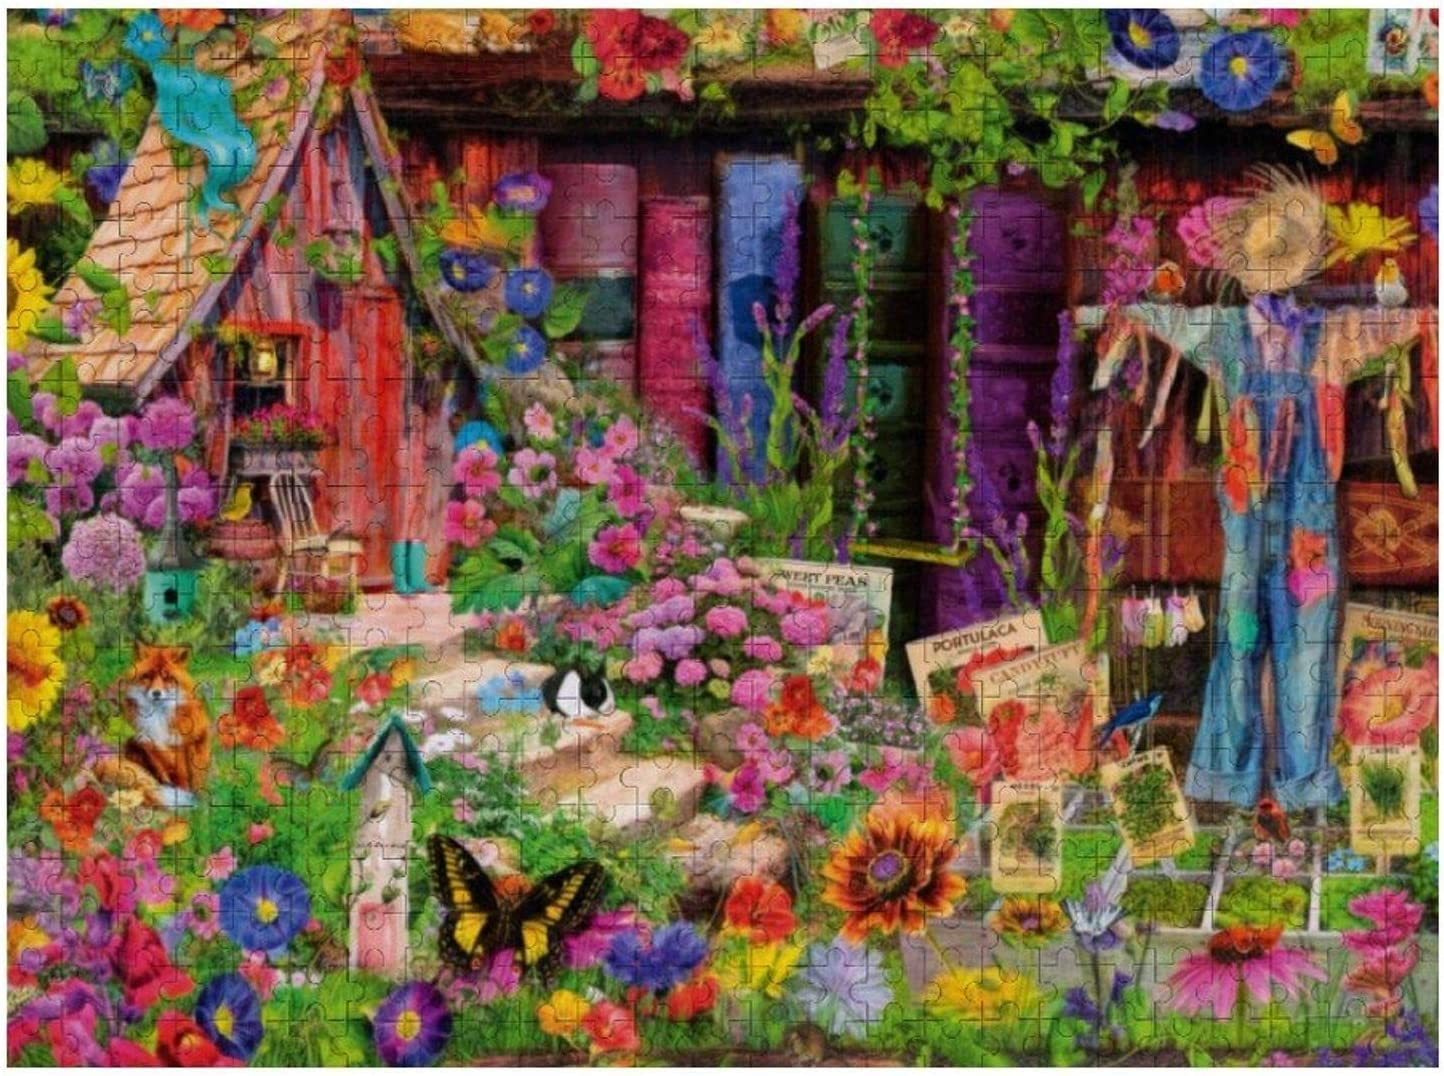 1000 Piece Wooden Jigsaw Puzzle The Scarecrow's Garden Jigsaw Puzzles Fun Game Toys Birthday Gifts (Without Frame)